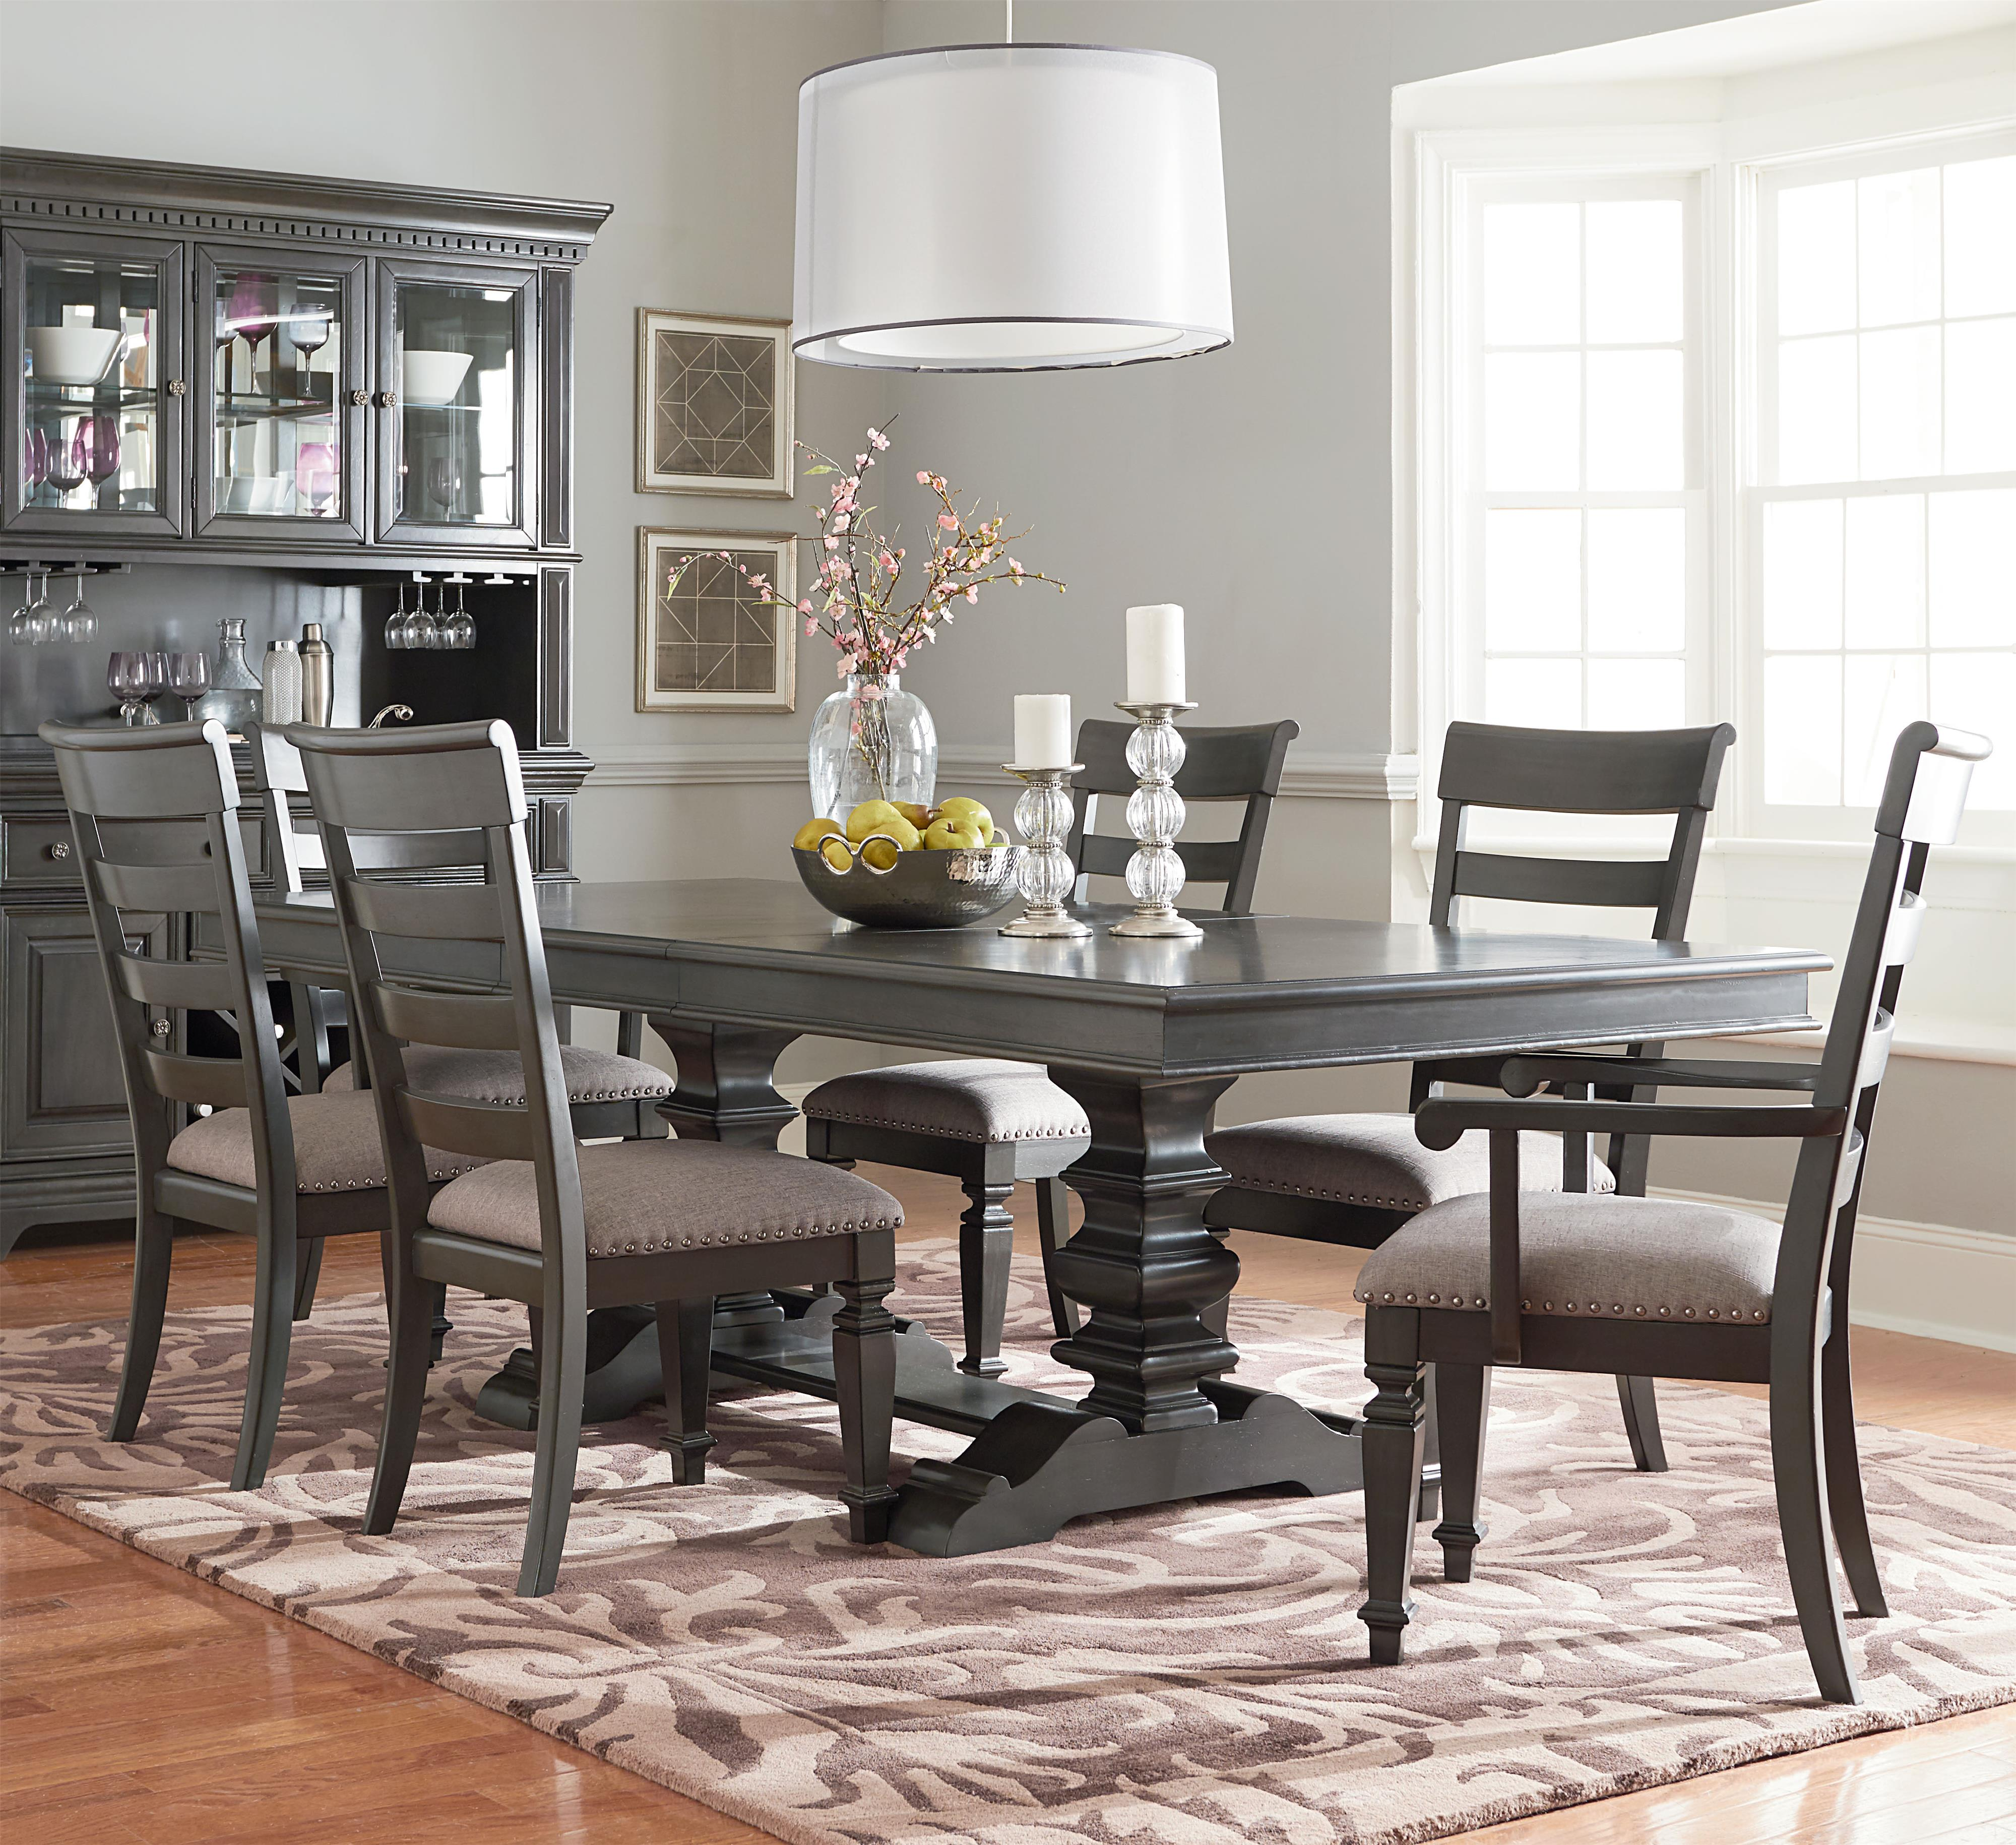 Trestle Table Dining Set With Six Chairs By Standard